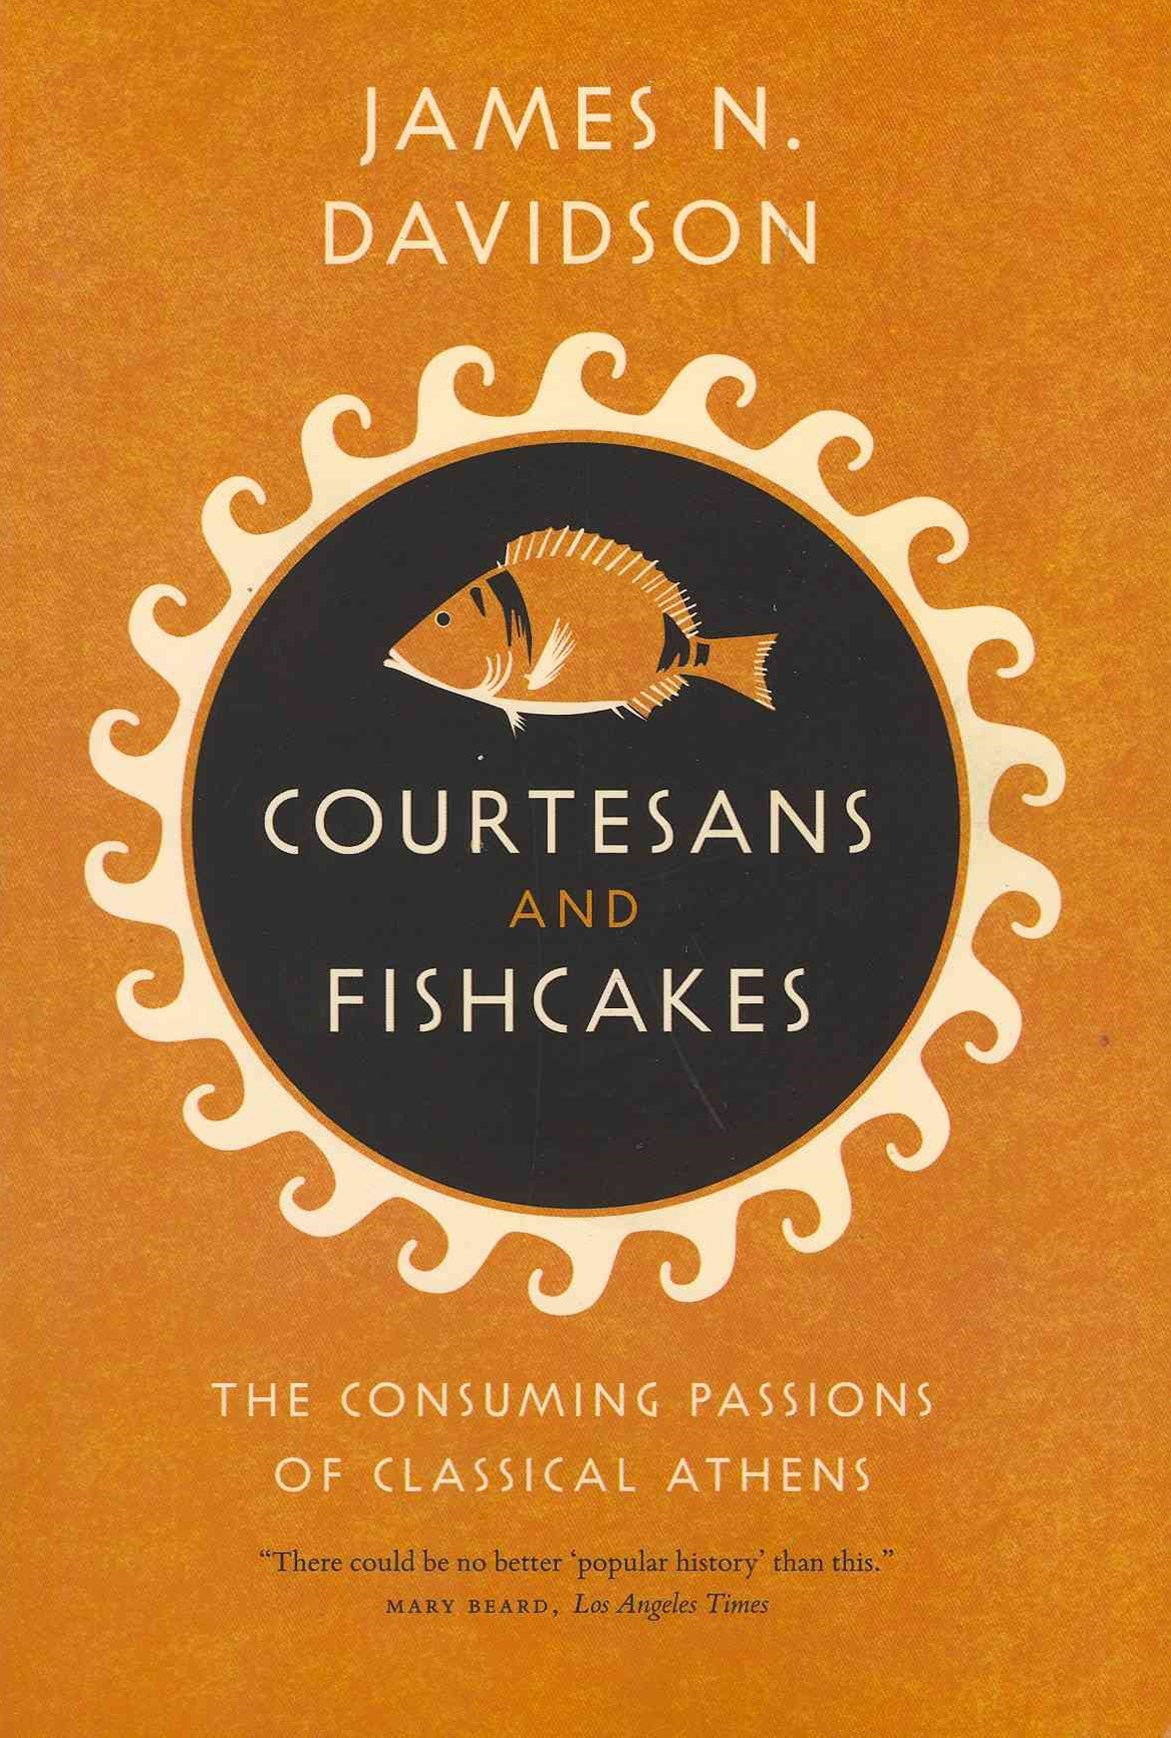 Courtesans and Fishcakes - The Consuming Passions of Classical Athens